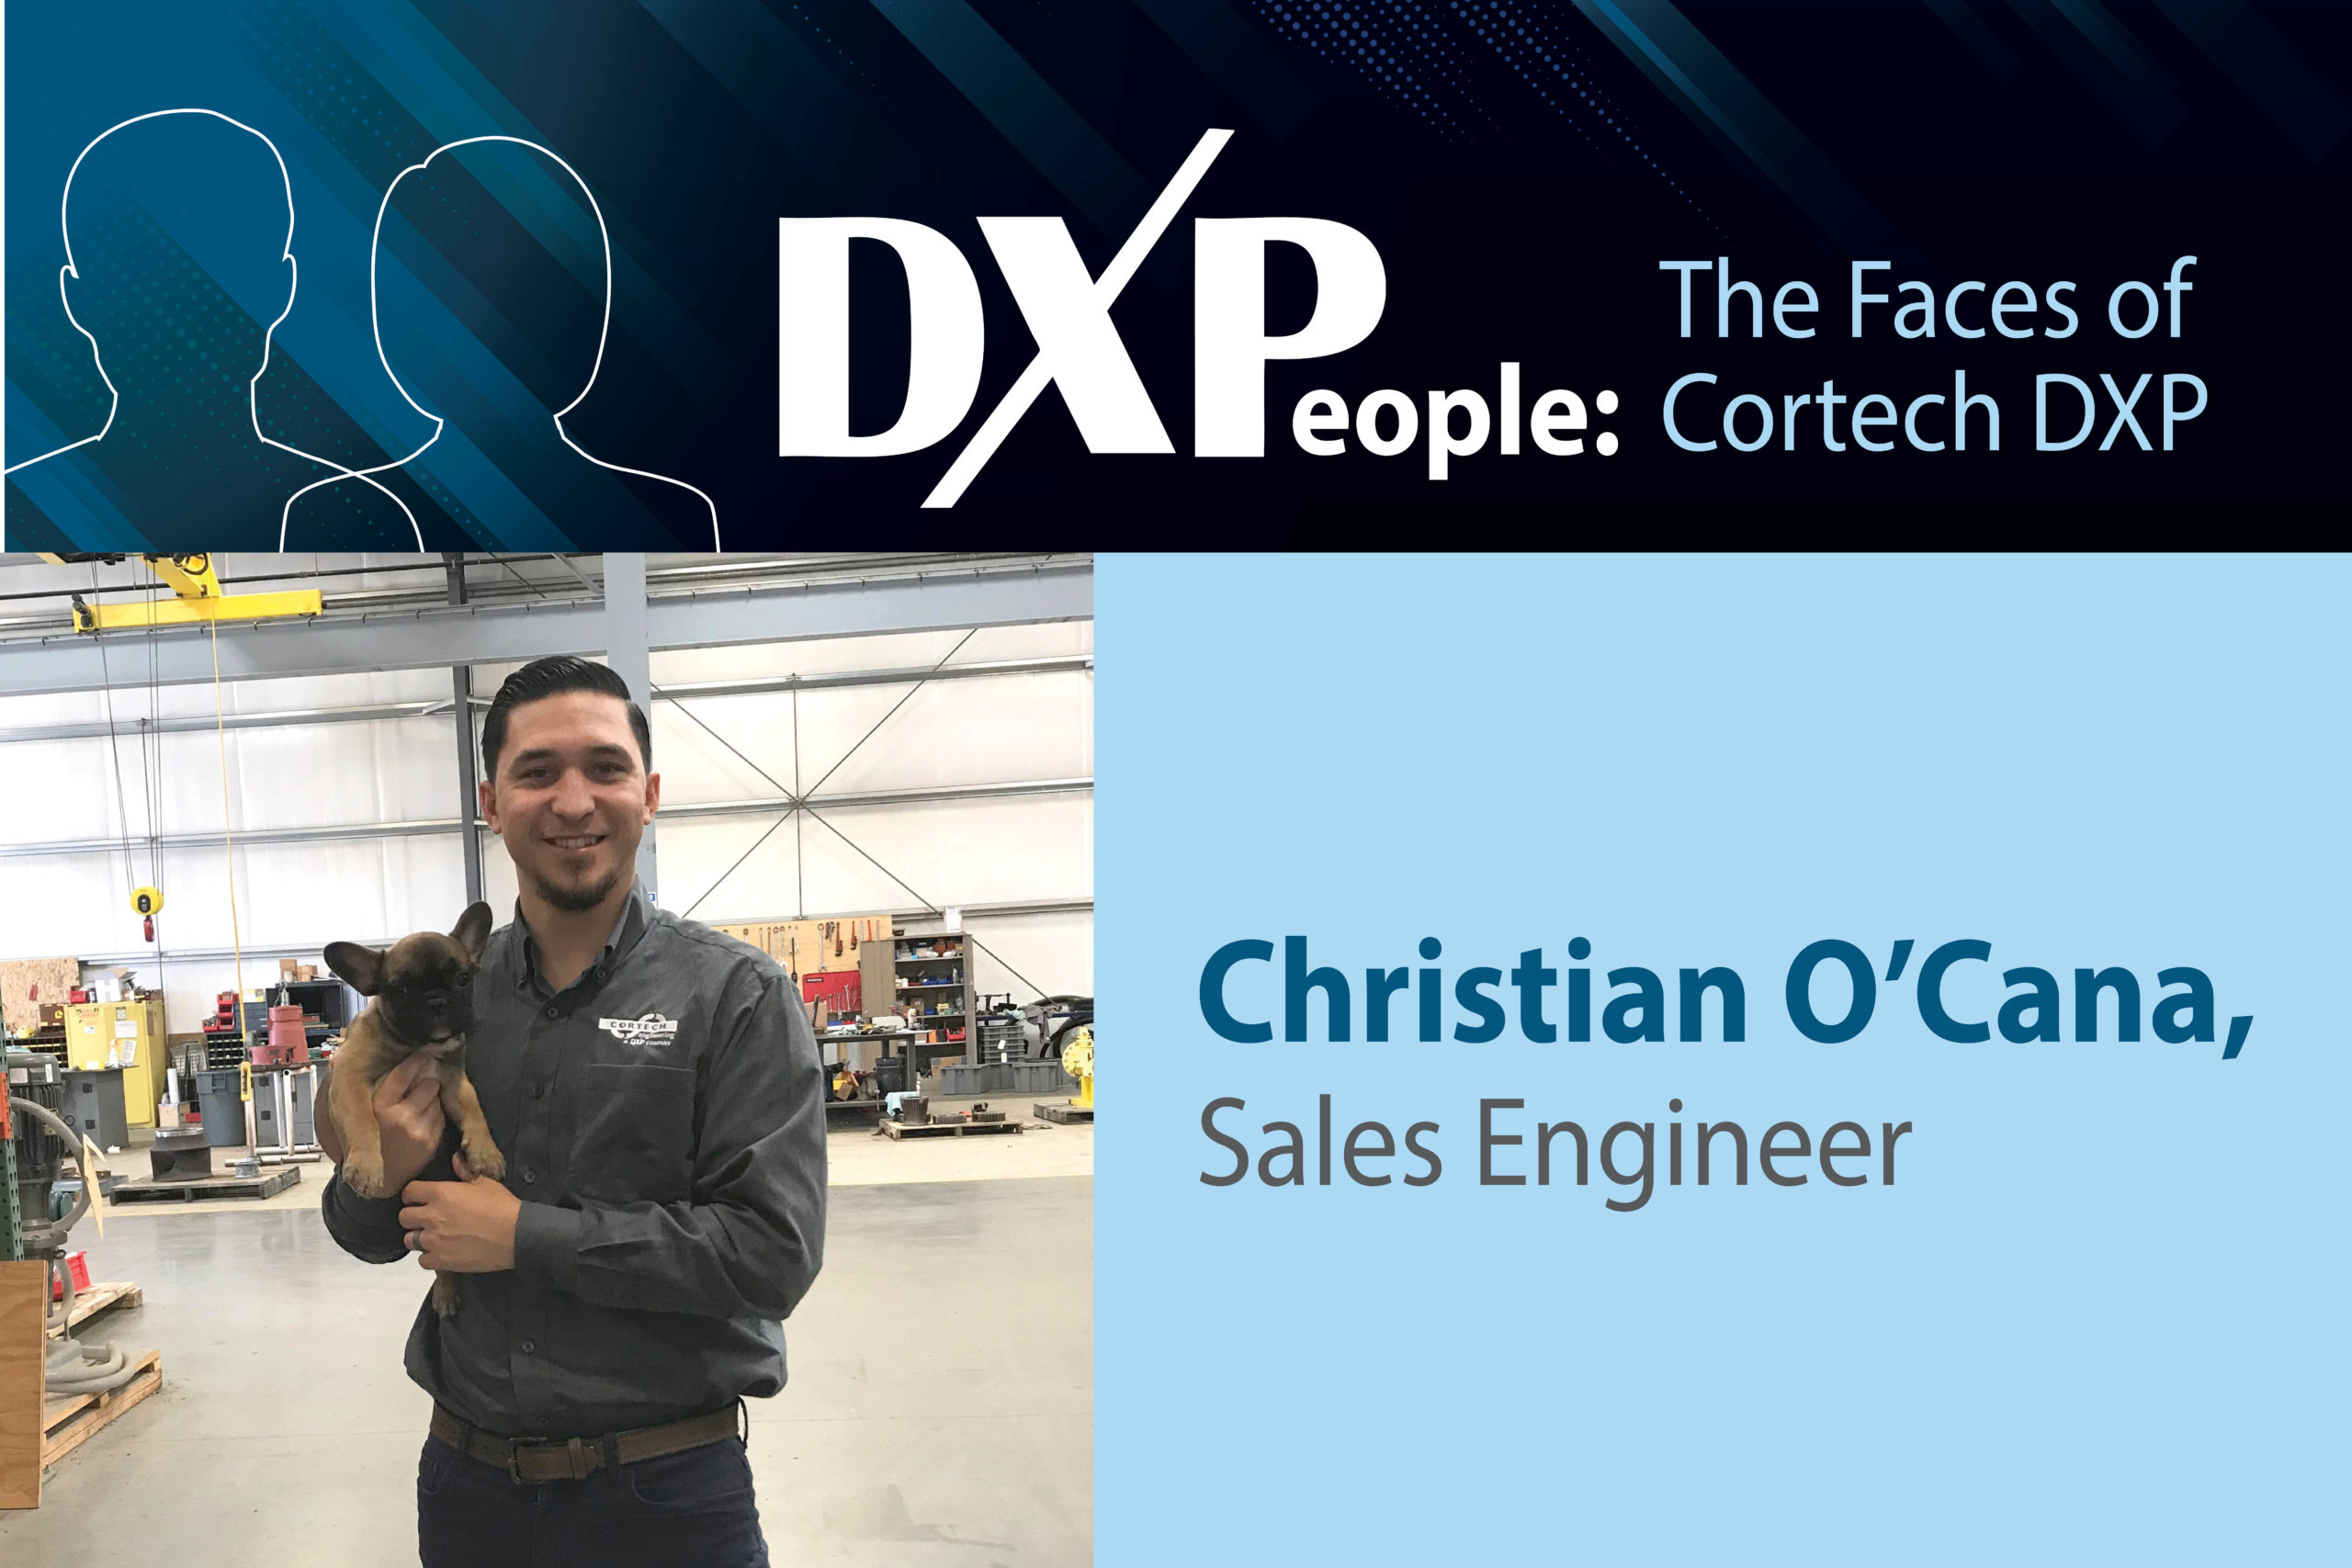 The Faces of DXP Cortech <br> Christian O'Cana, Sales Engineer